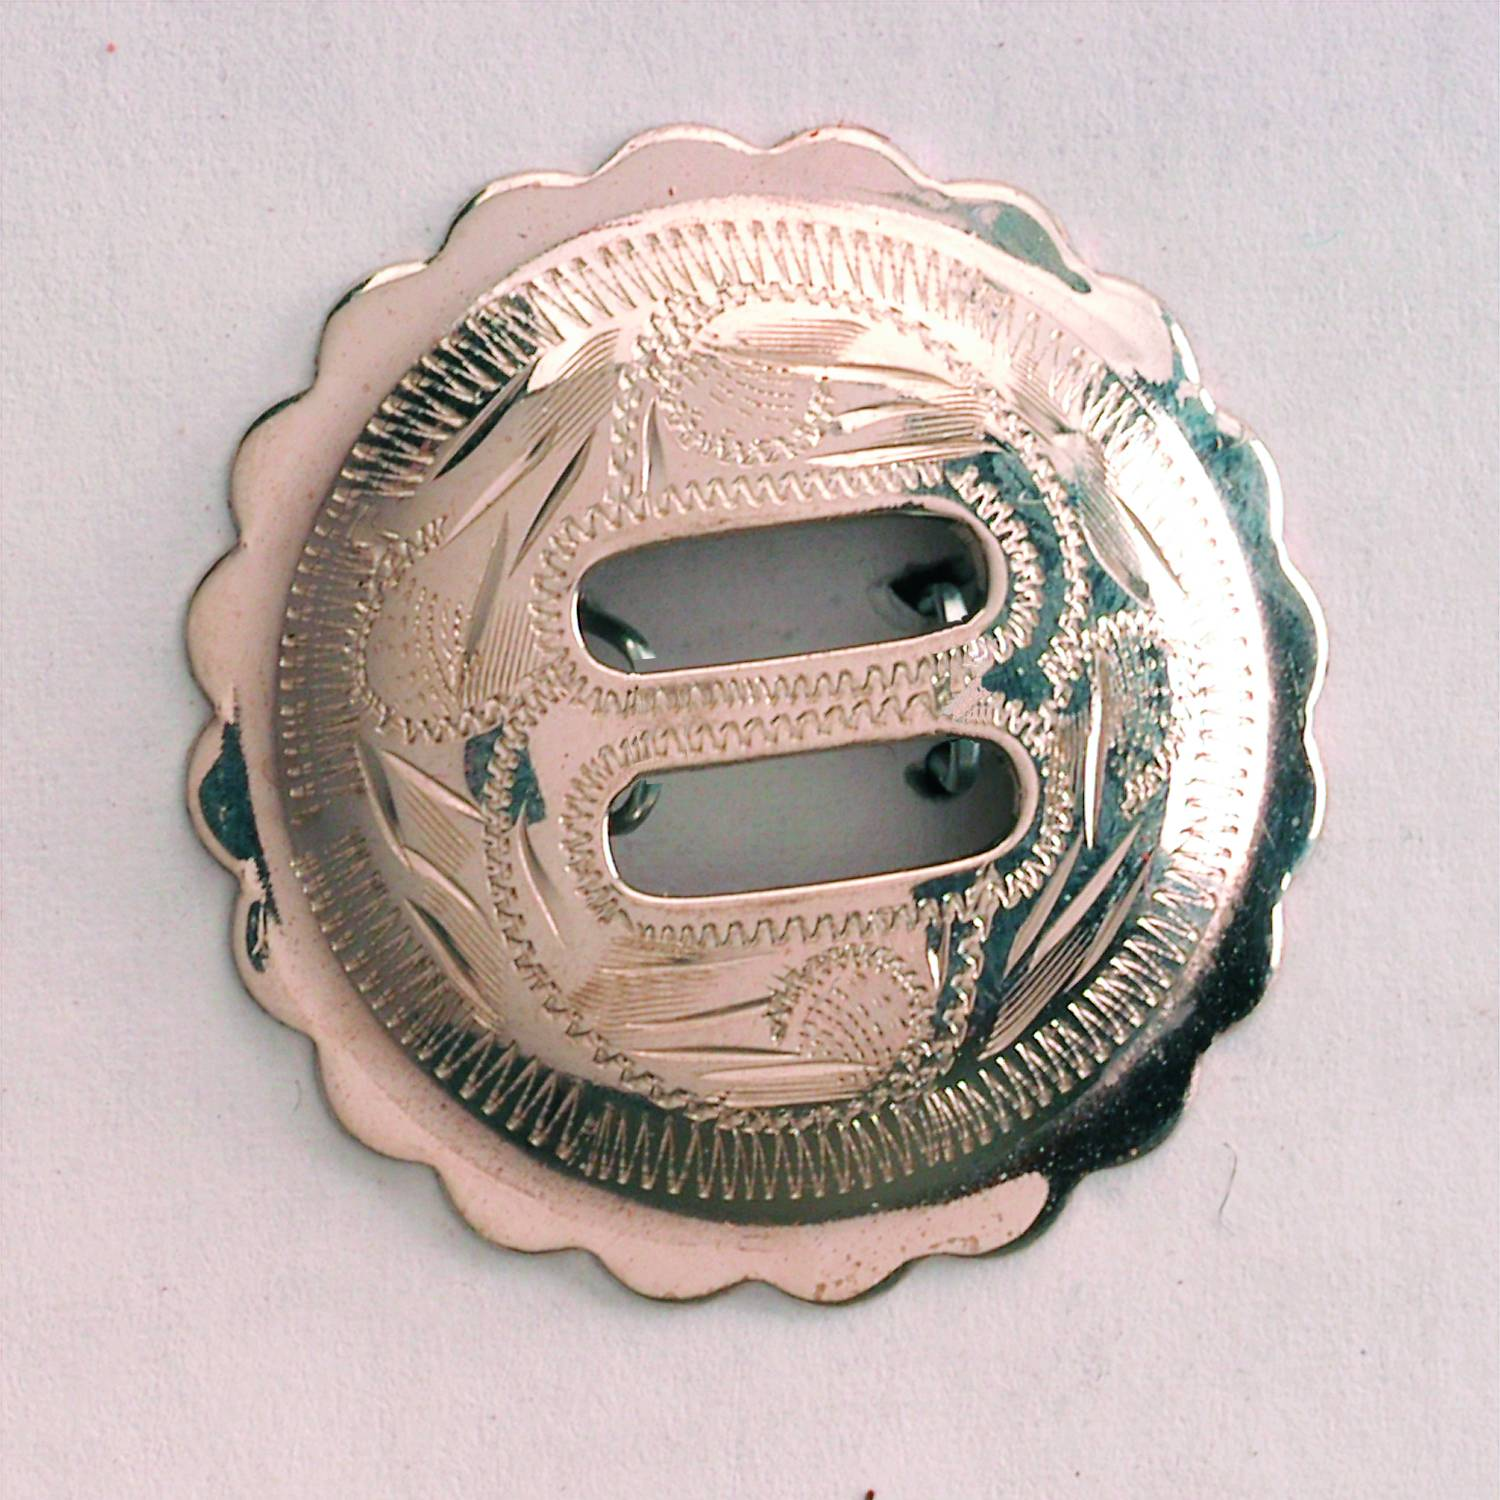 Colorado Saddlery Engraved Scallped Edge Slotted Nickel Silver Rosette